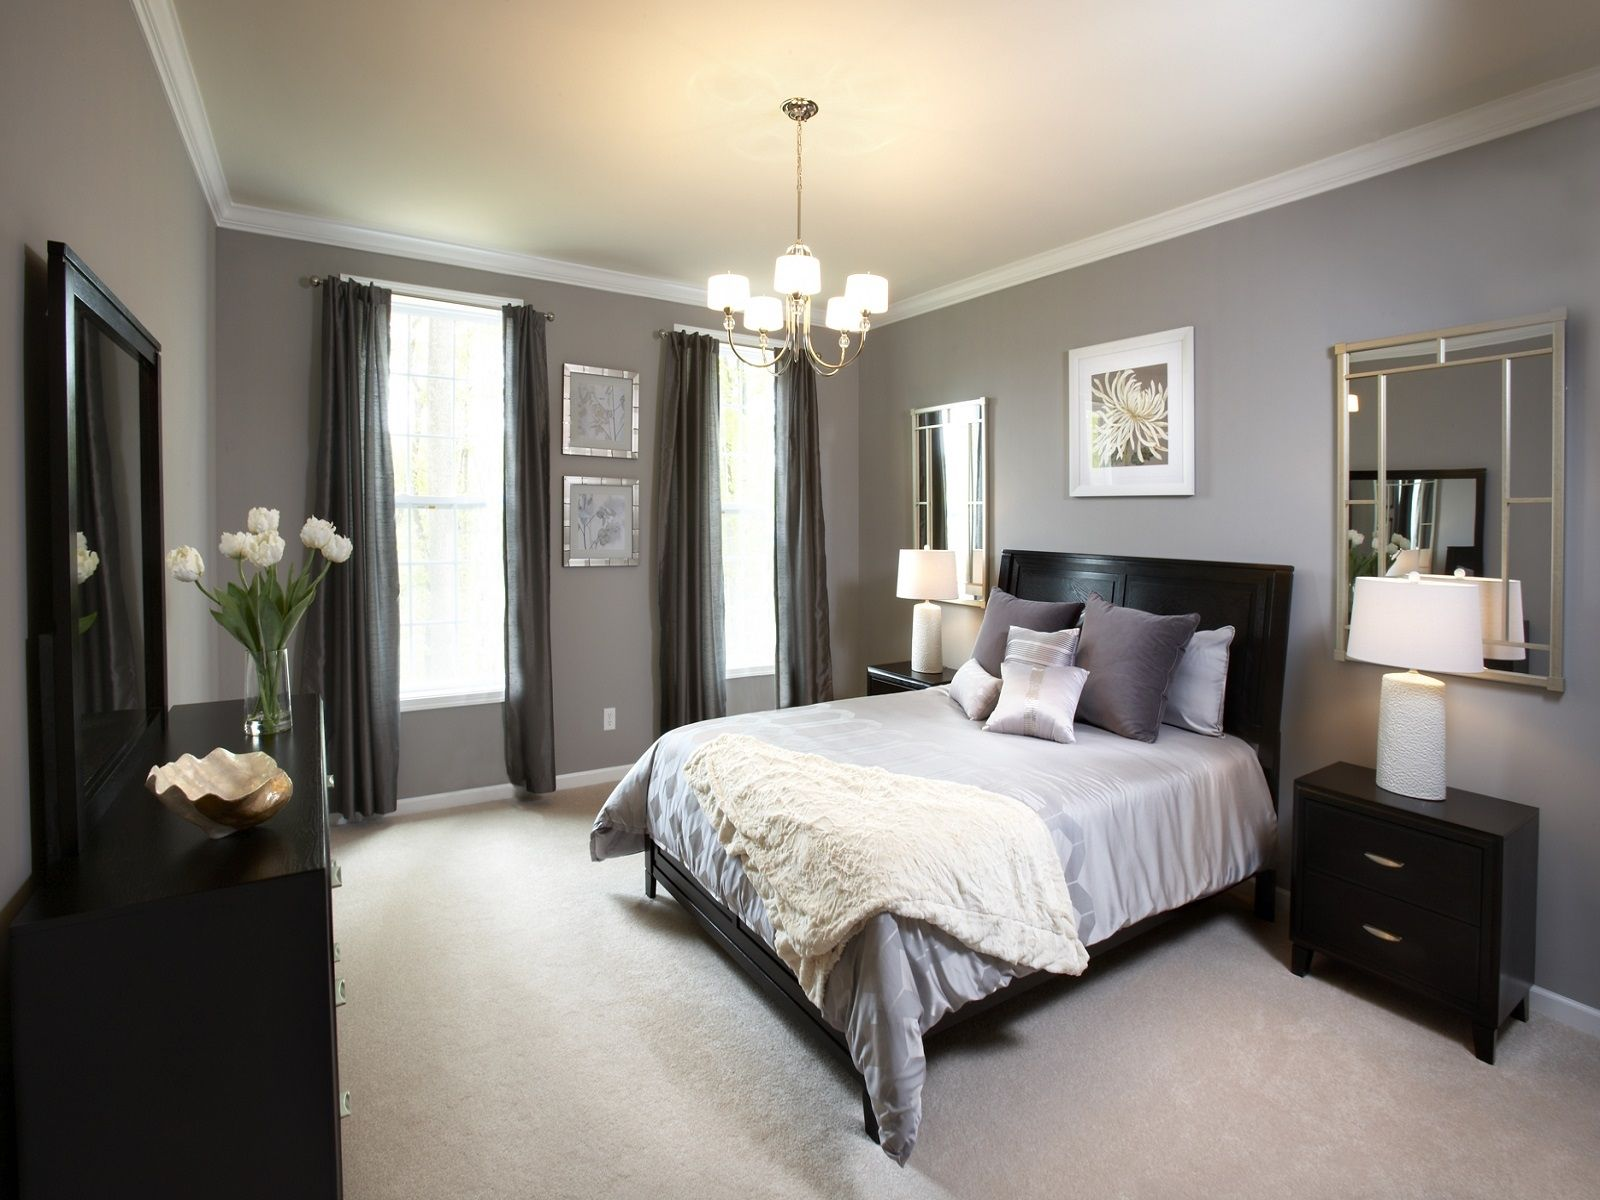 45 beautiful paint color ideas for master bedroom - Decorate Bedroom